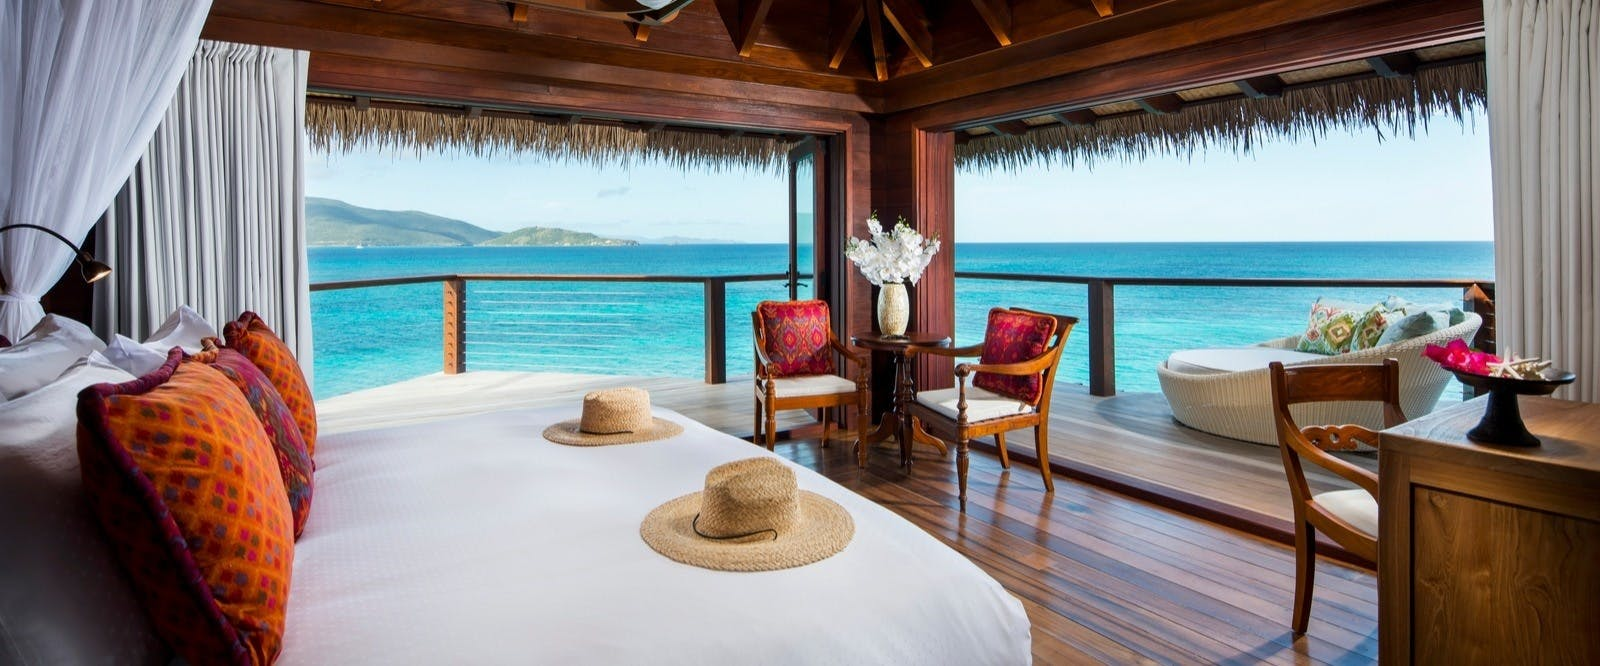 Leha Lo at Necker Island, British Virgin Islands